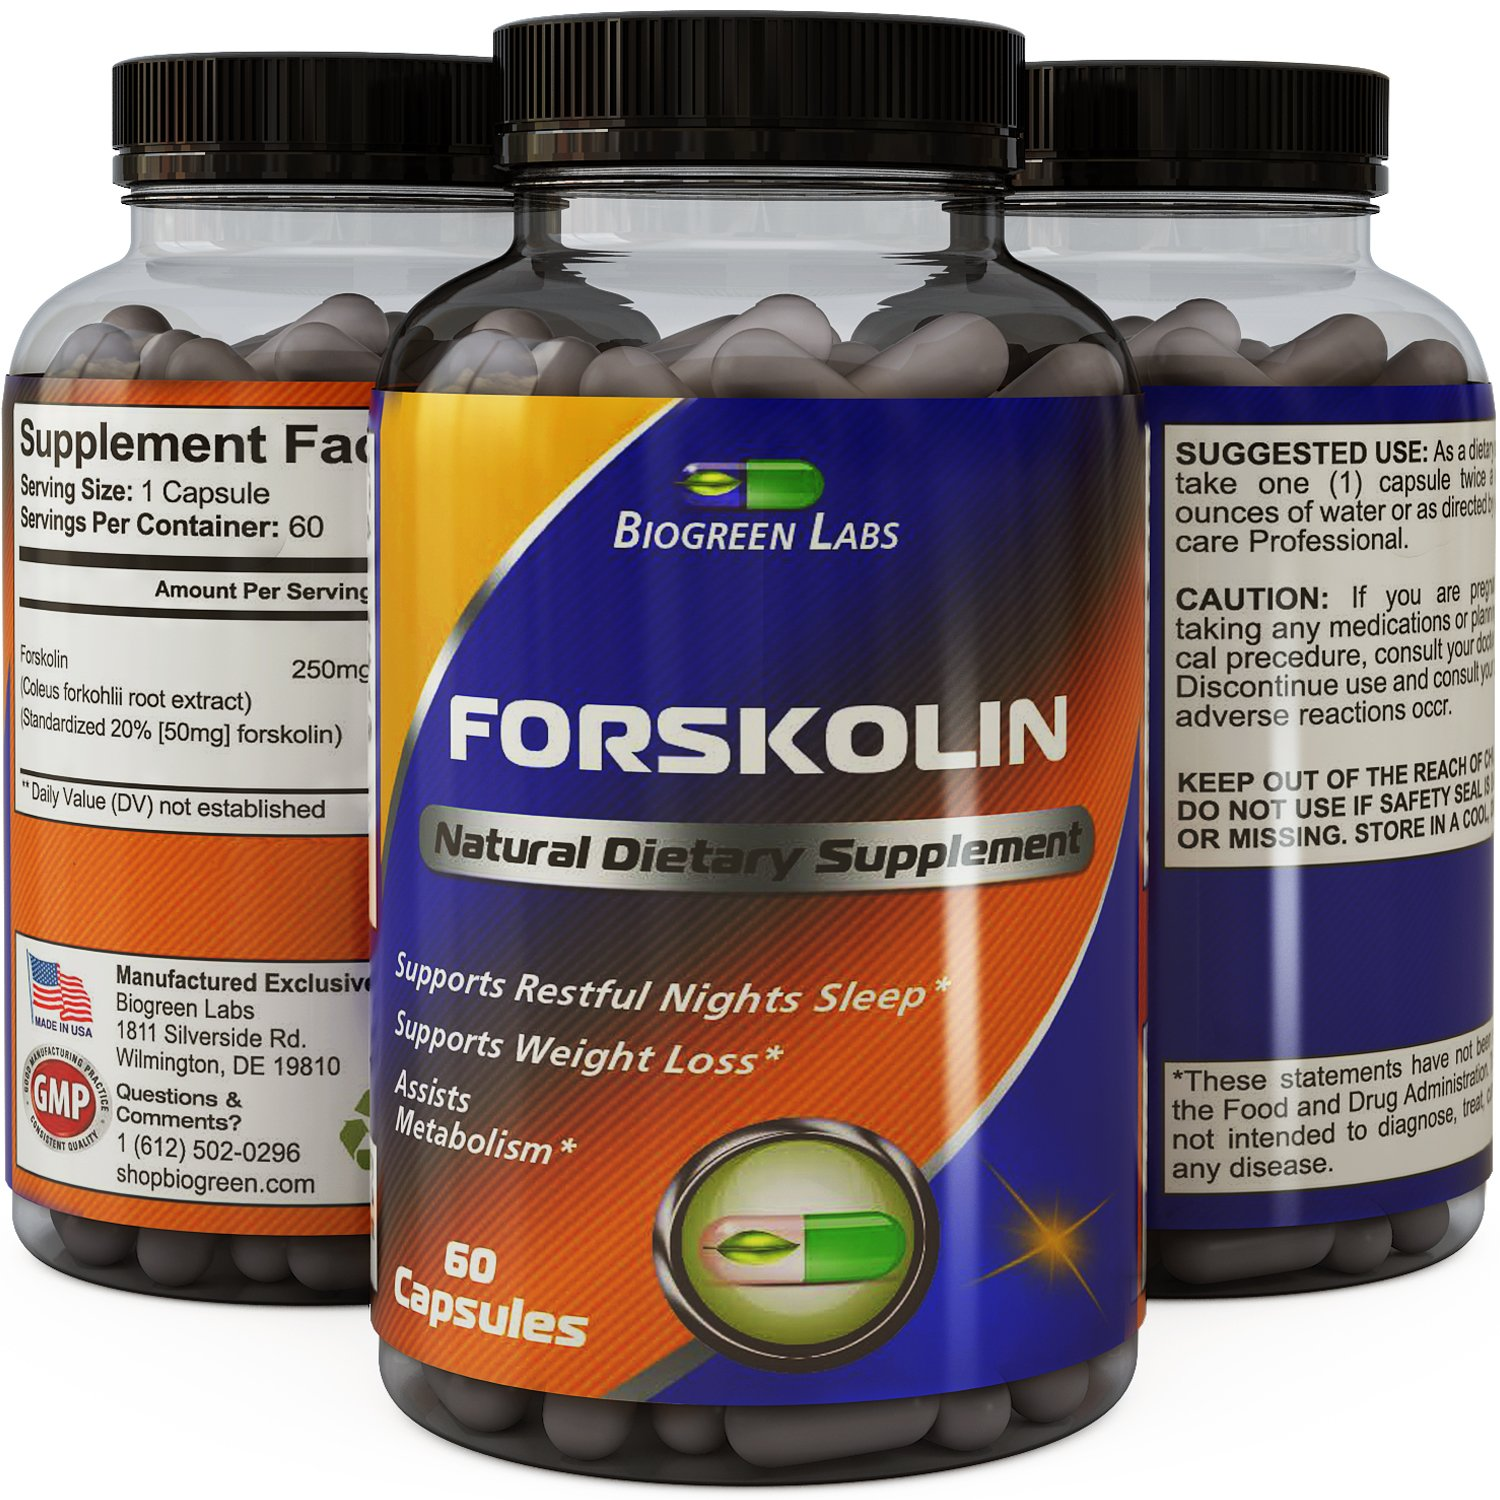 Potent Forskolin For Weight Loss - Pure Forskolin Root Extract Supplement - Burn Belly Fat + Support Energy Levels - Natural Coleus Forskohlii Weight Loss Pills For Men & Women By Biogreen Labs